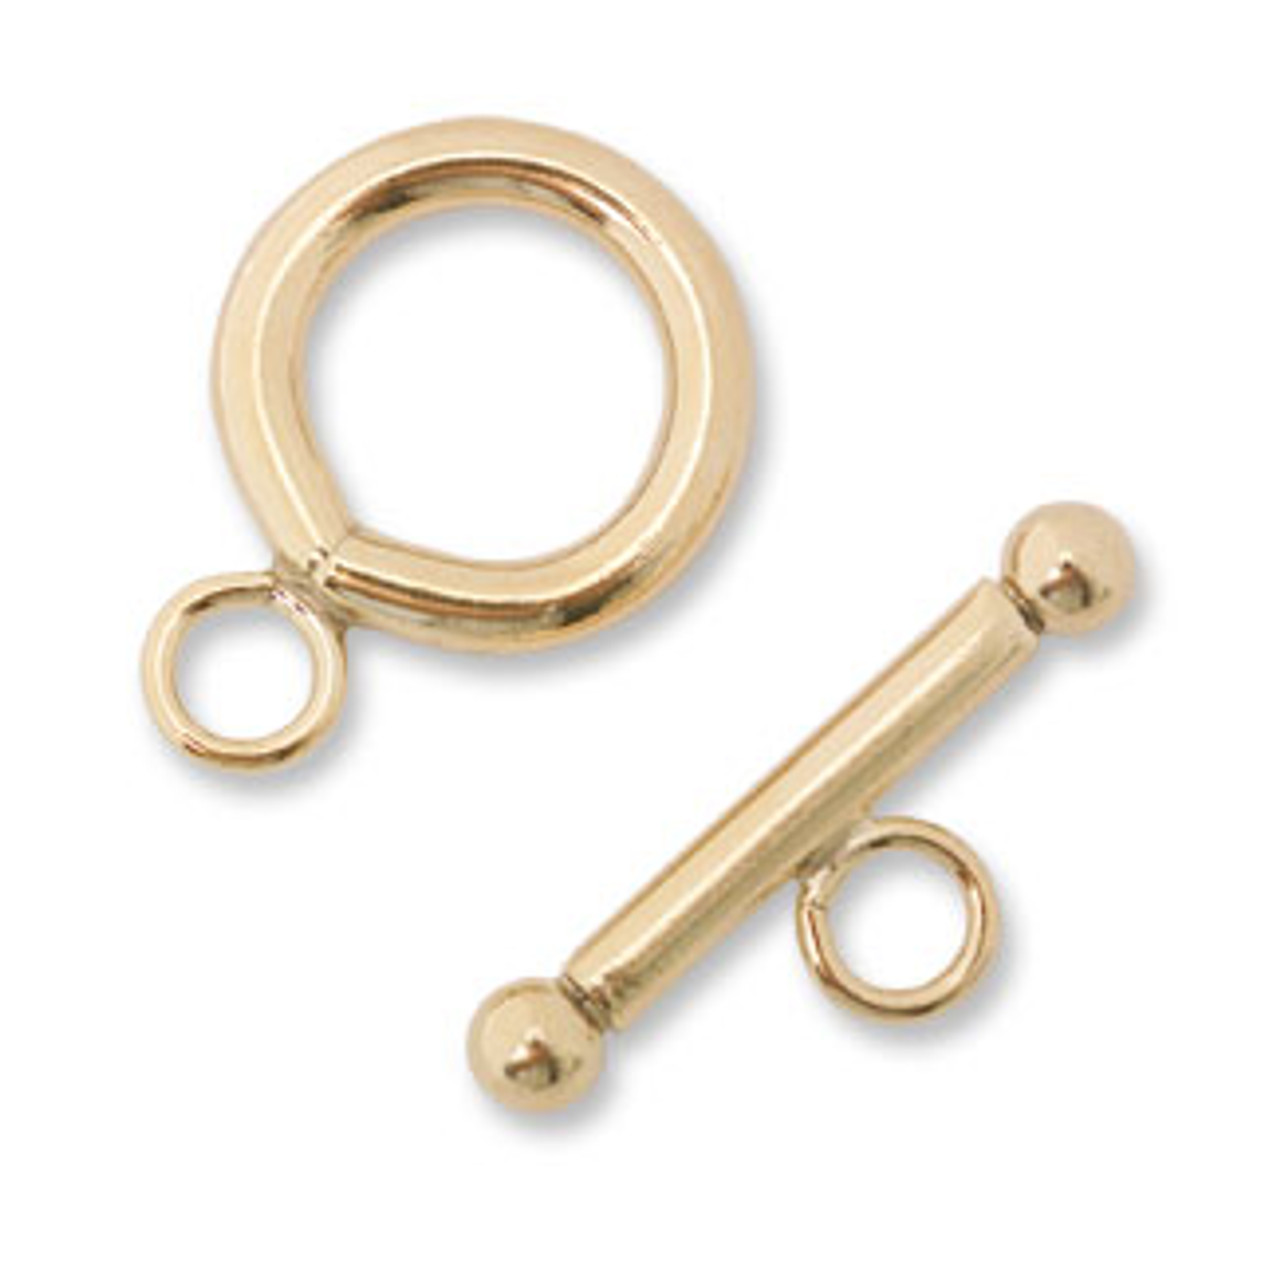 14/20 GF 12mm Toggle & Ring Clasp (1 set)